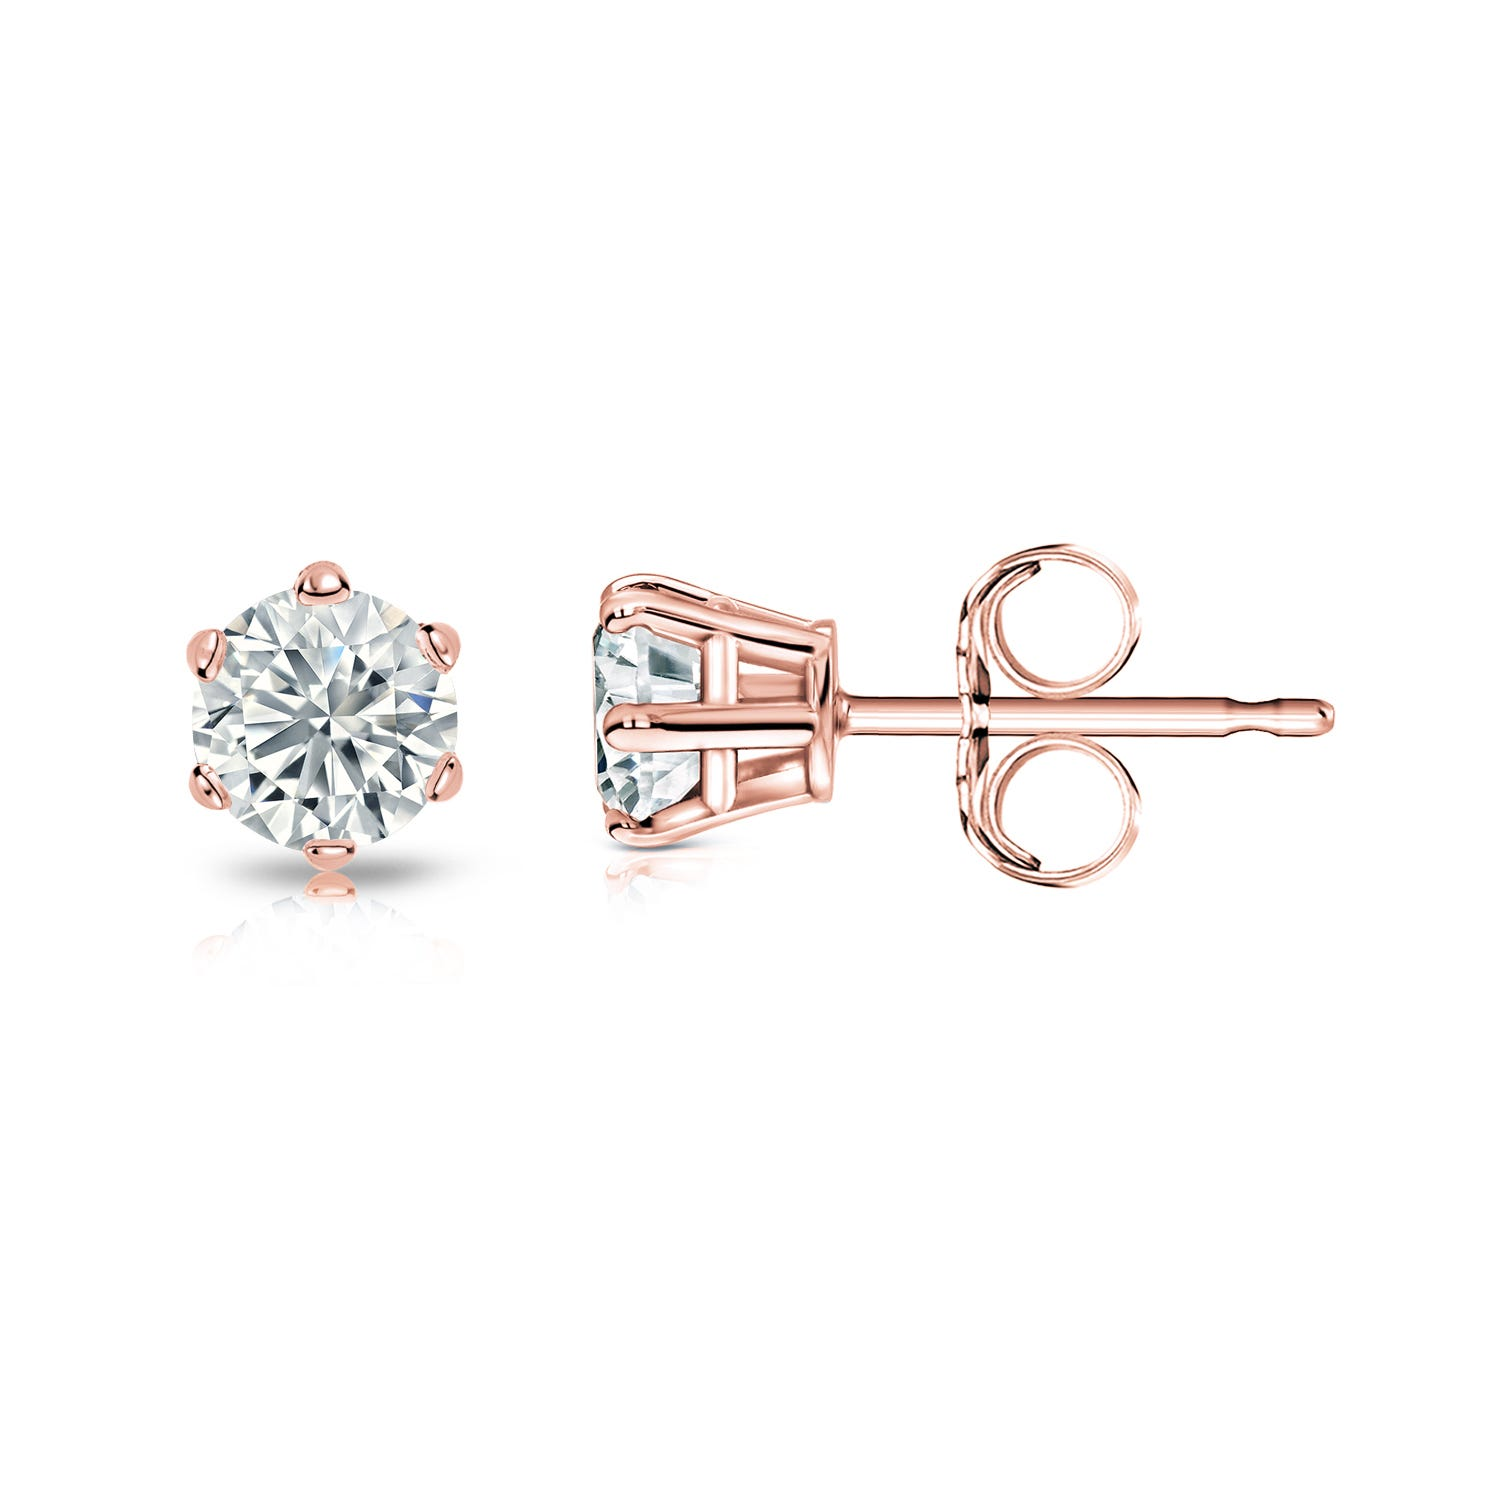 Round Diamond 1/5ctw. (IJ-I2) Solitaire Stud 6-Prong Earrings in 10K Rose Gold